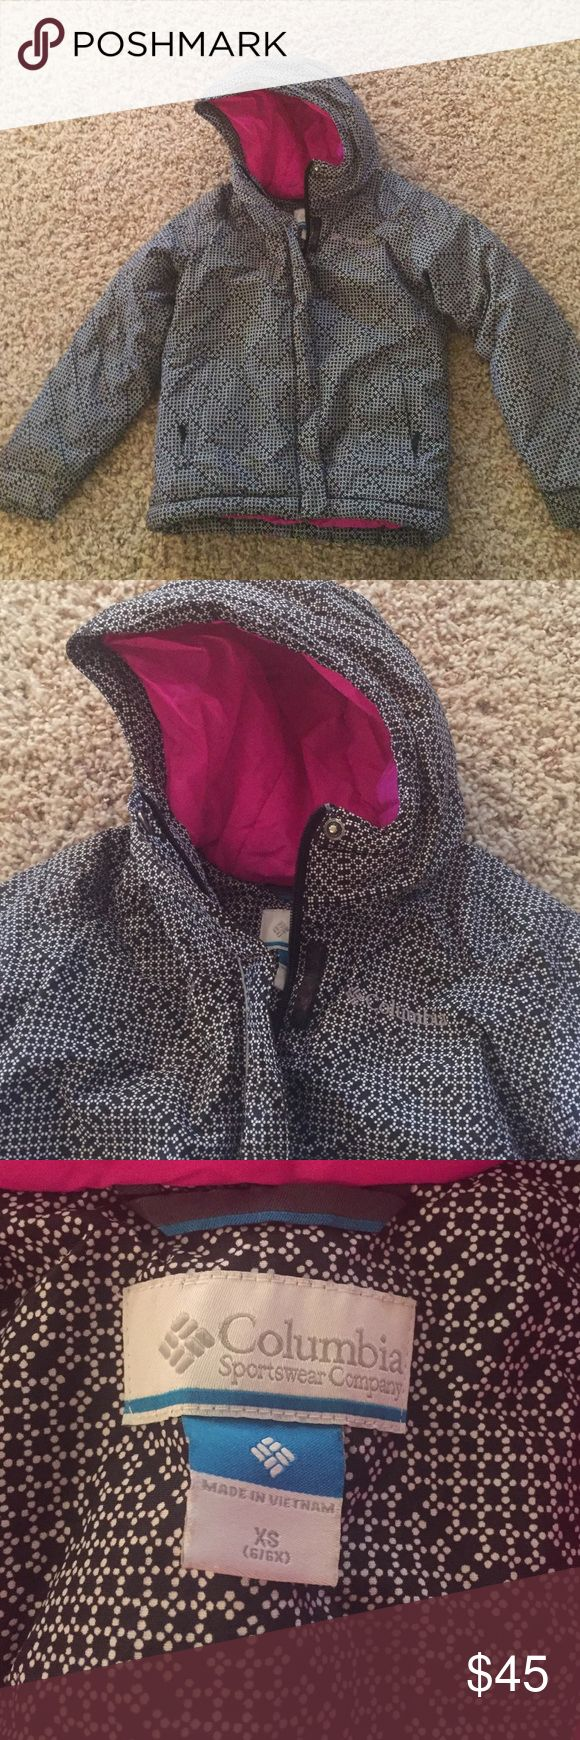 Girls Columbia coat XS 6/6x Size XS 6/6x Columbia coat. Black with white and pink liner. Zipper closure with velcro. Pockets are zipper closure. In good condition, only worn part of a winter season. Columbia Jackets & Coats Puffers